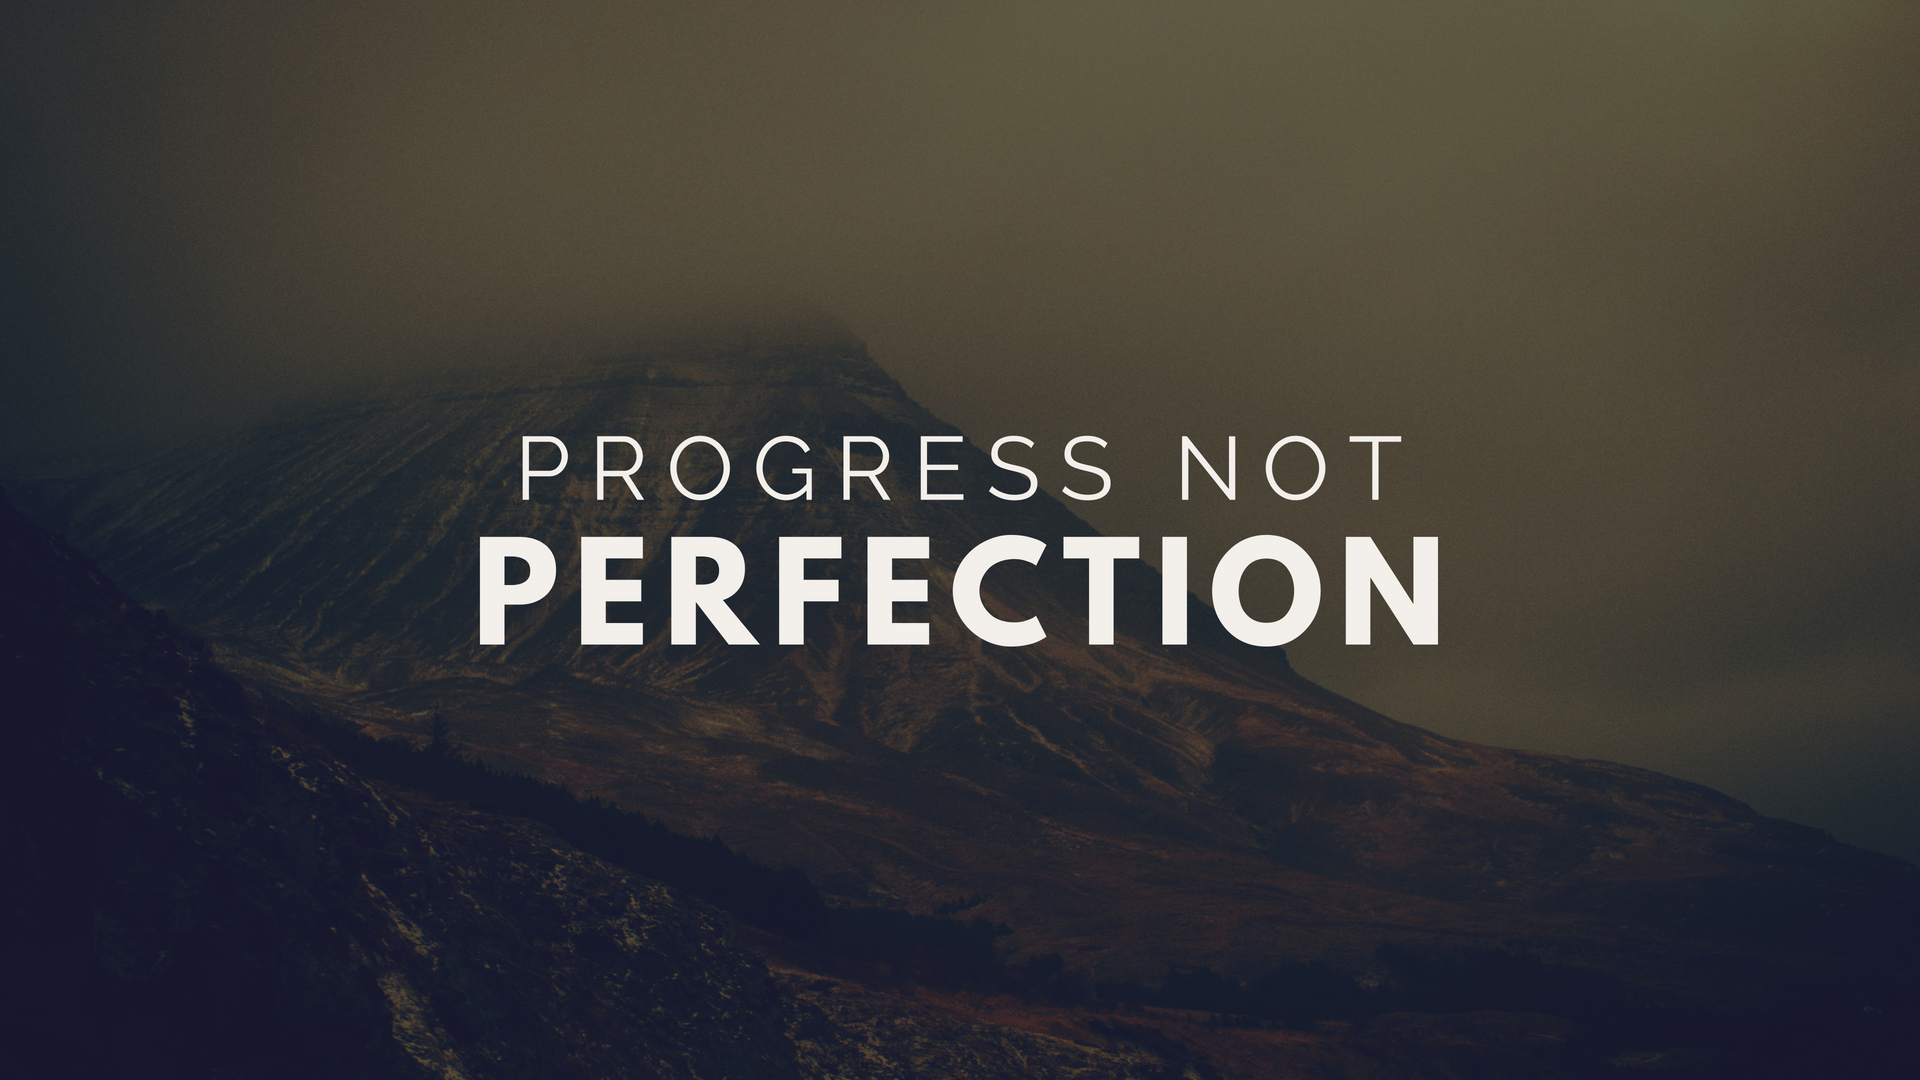 Type 1 - Progress not Perfection